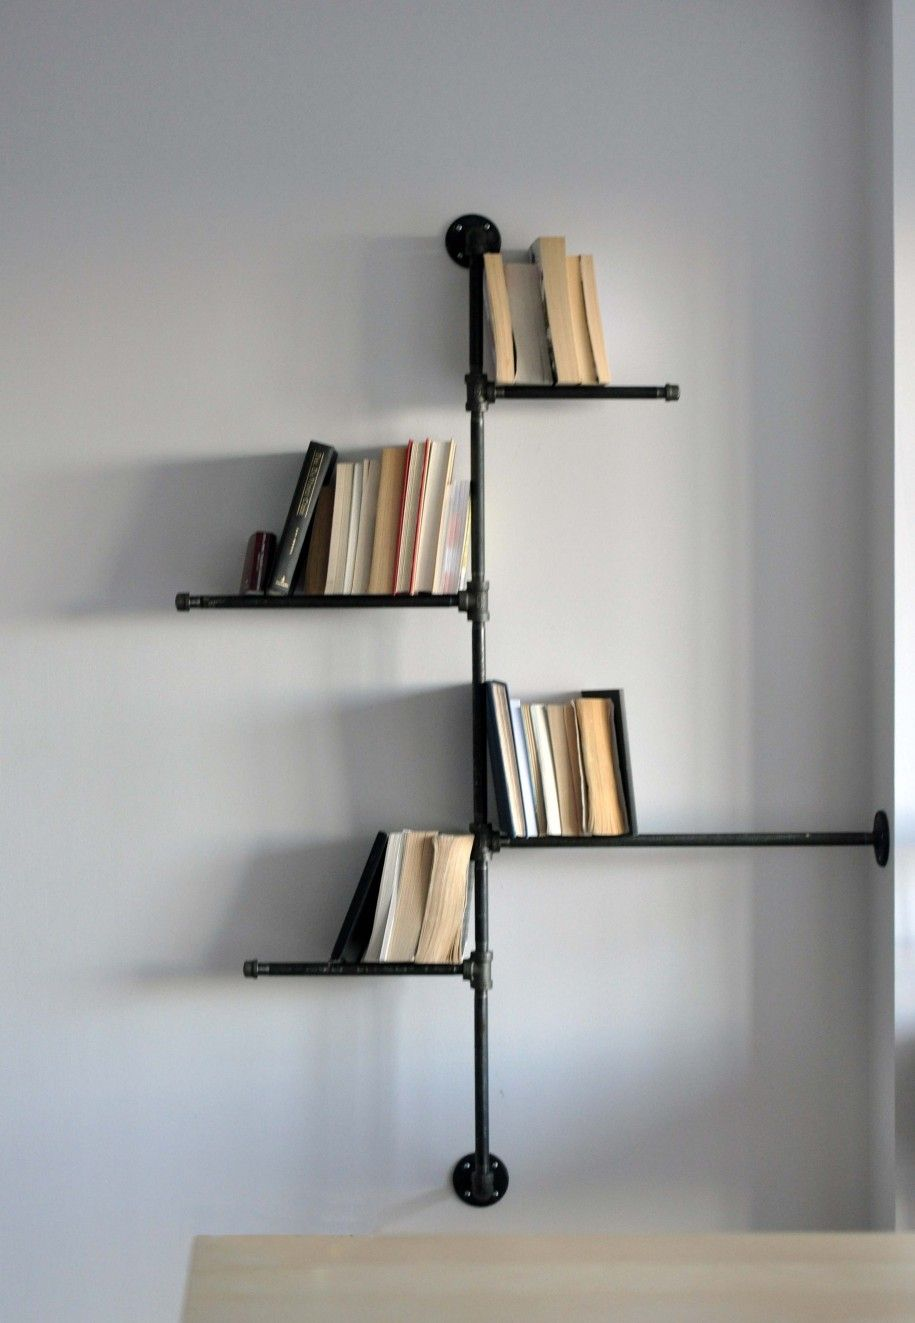 Astonishing Black Pipe Wall Mount Bookshelves With Simple Installation For  Cool Ideas Of